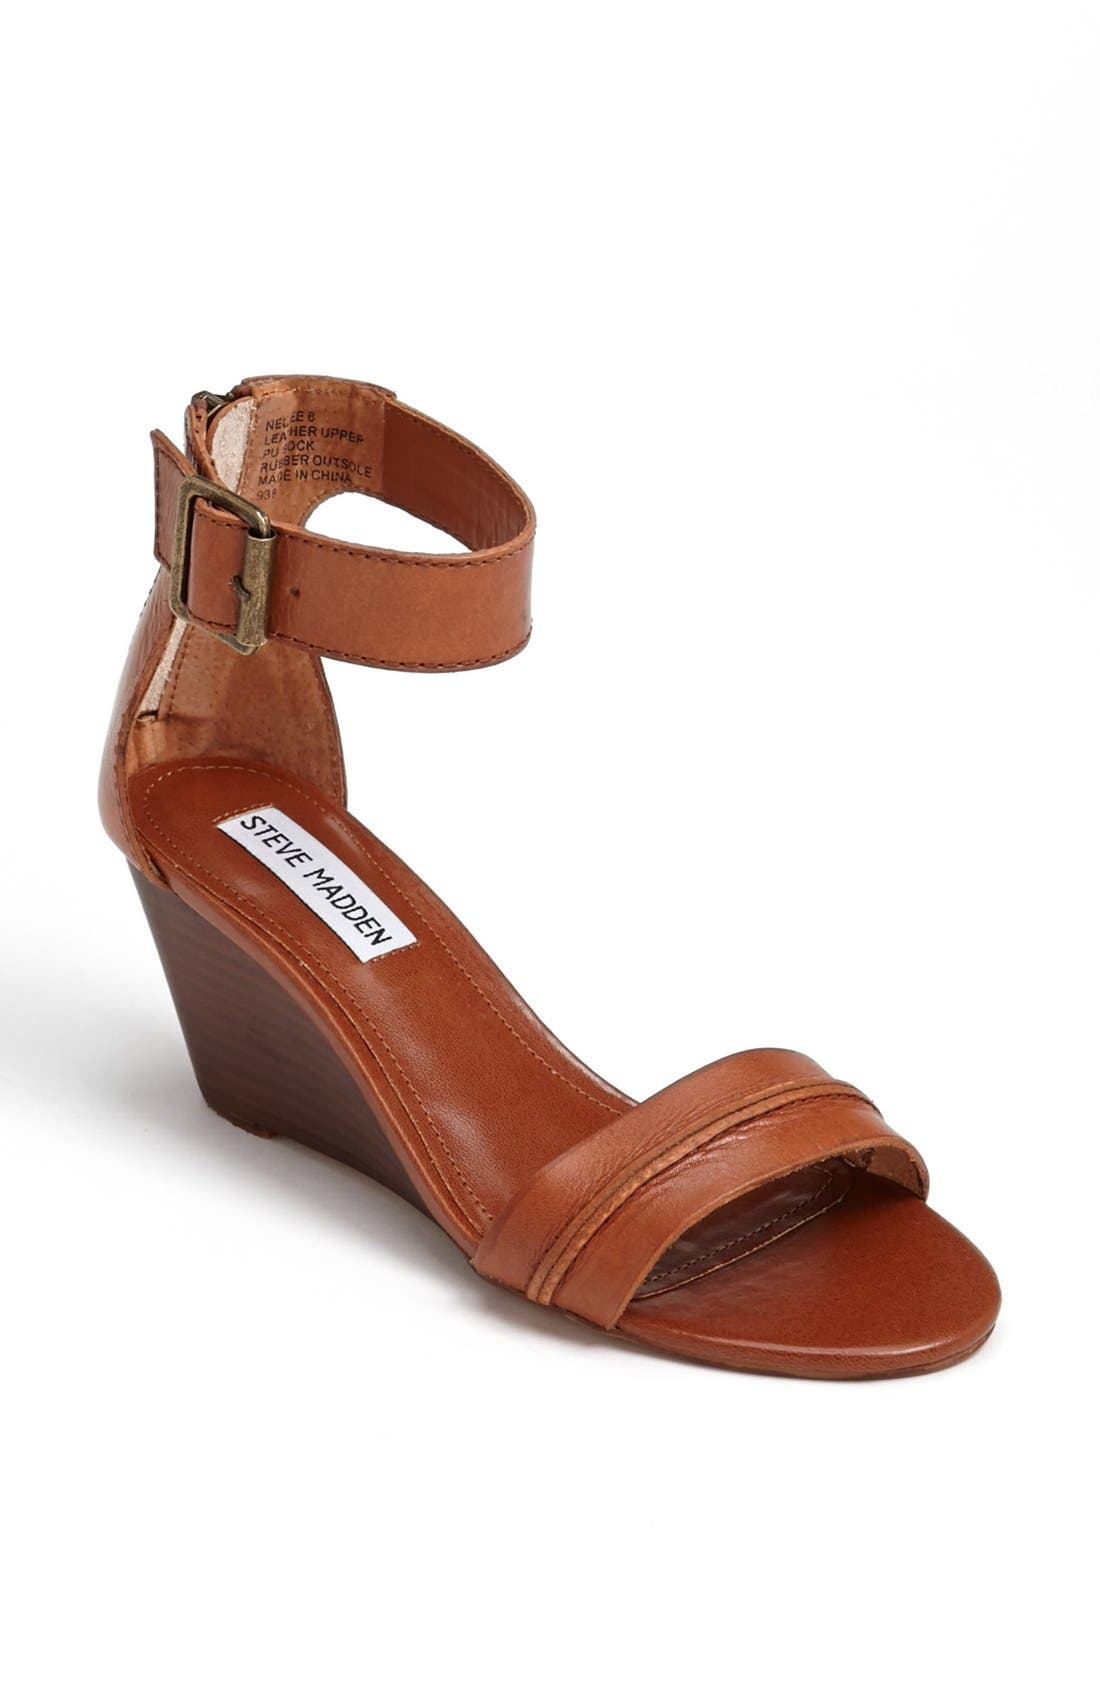 Alternate Image 1 Selected - Steve Madden 'Neliee' Sandal